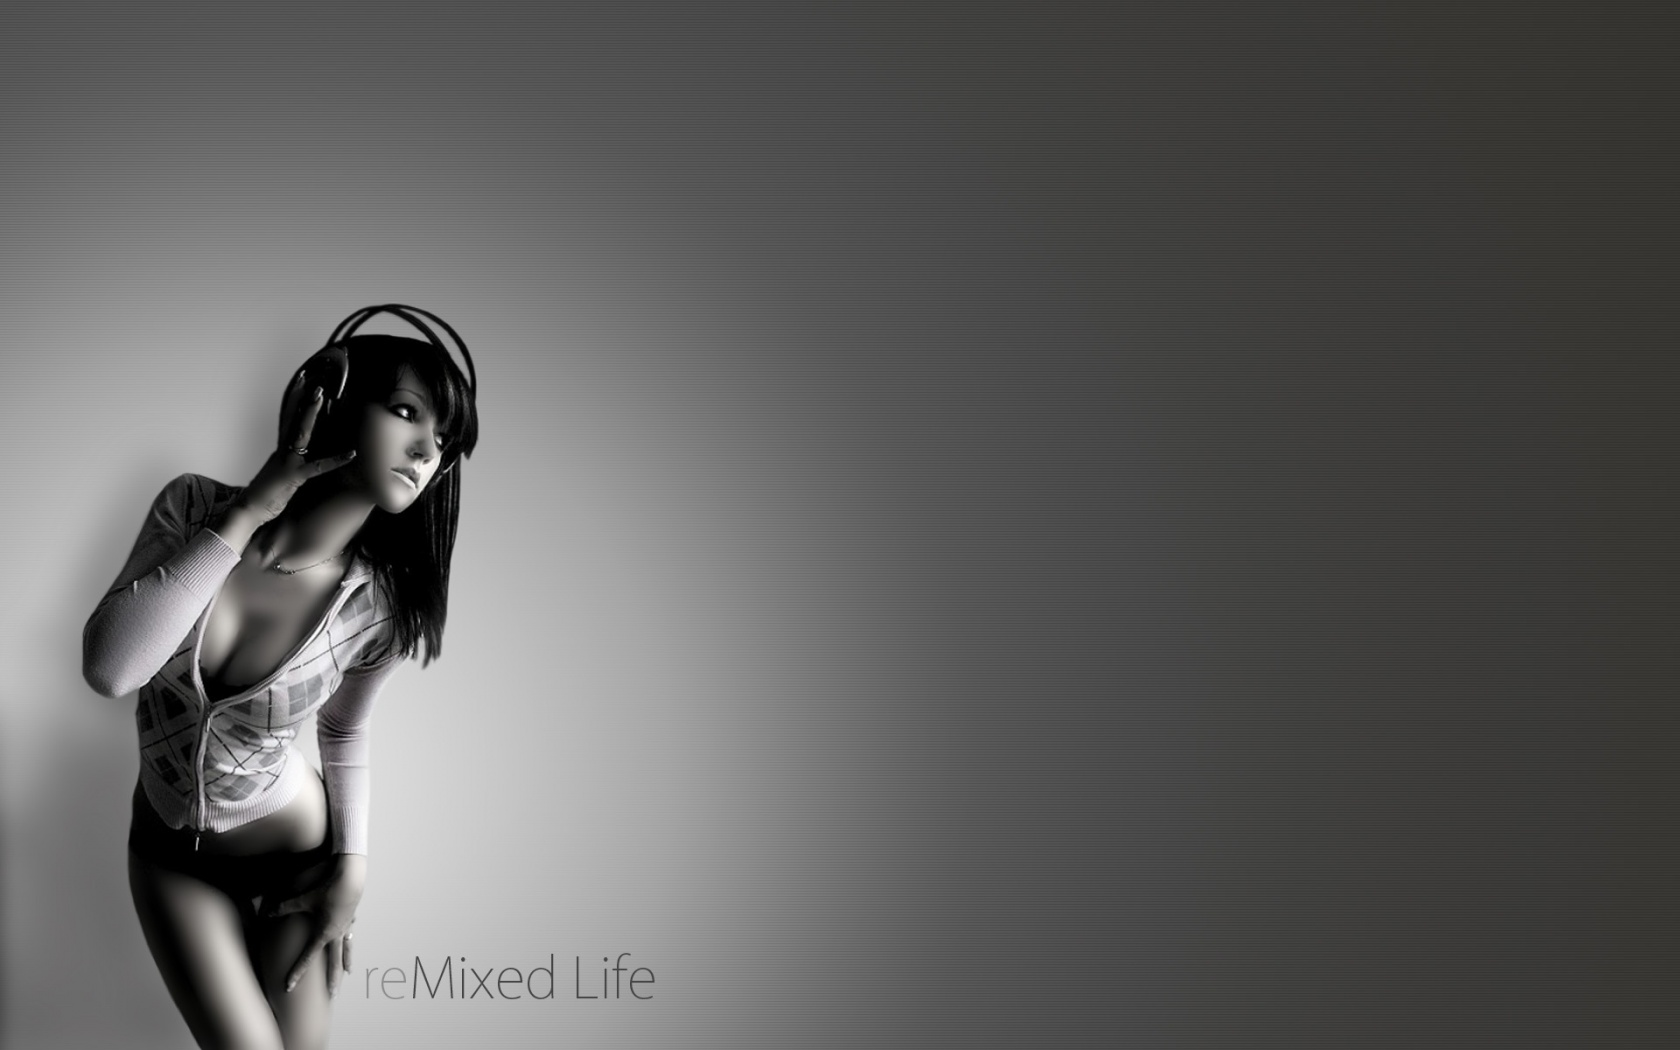 Remixed Life Hd And Wide Wallpapers - Hot Girl Listening To Music - HD Wallpaper